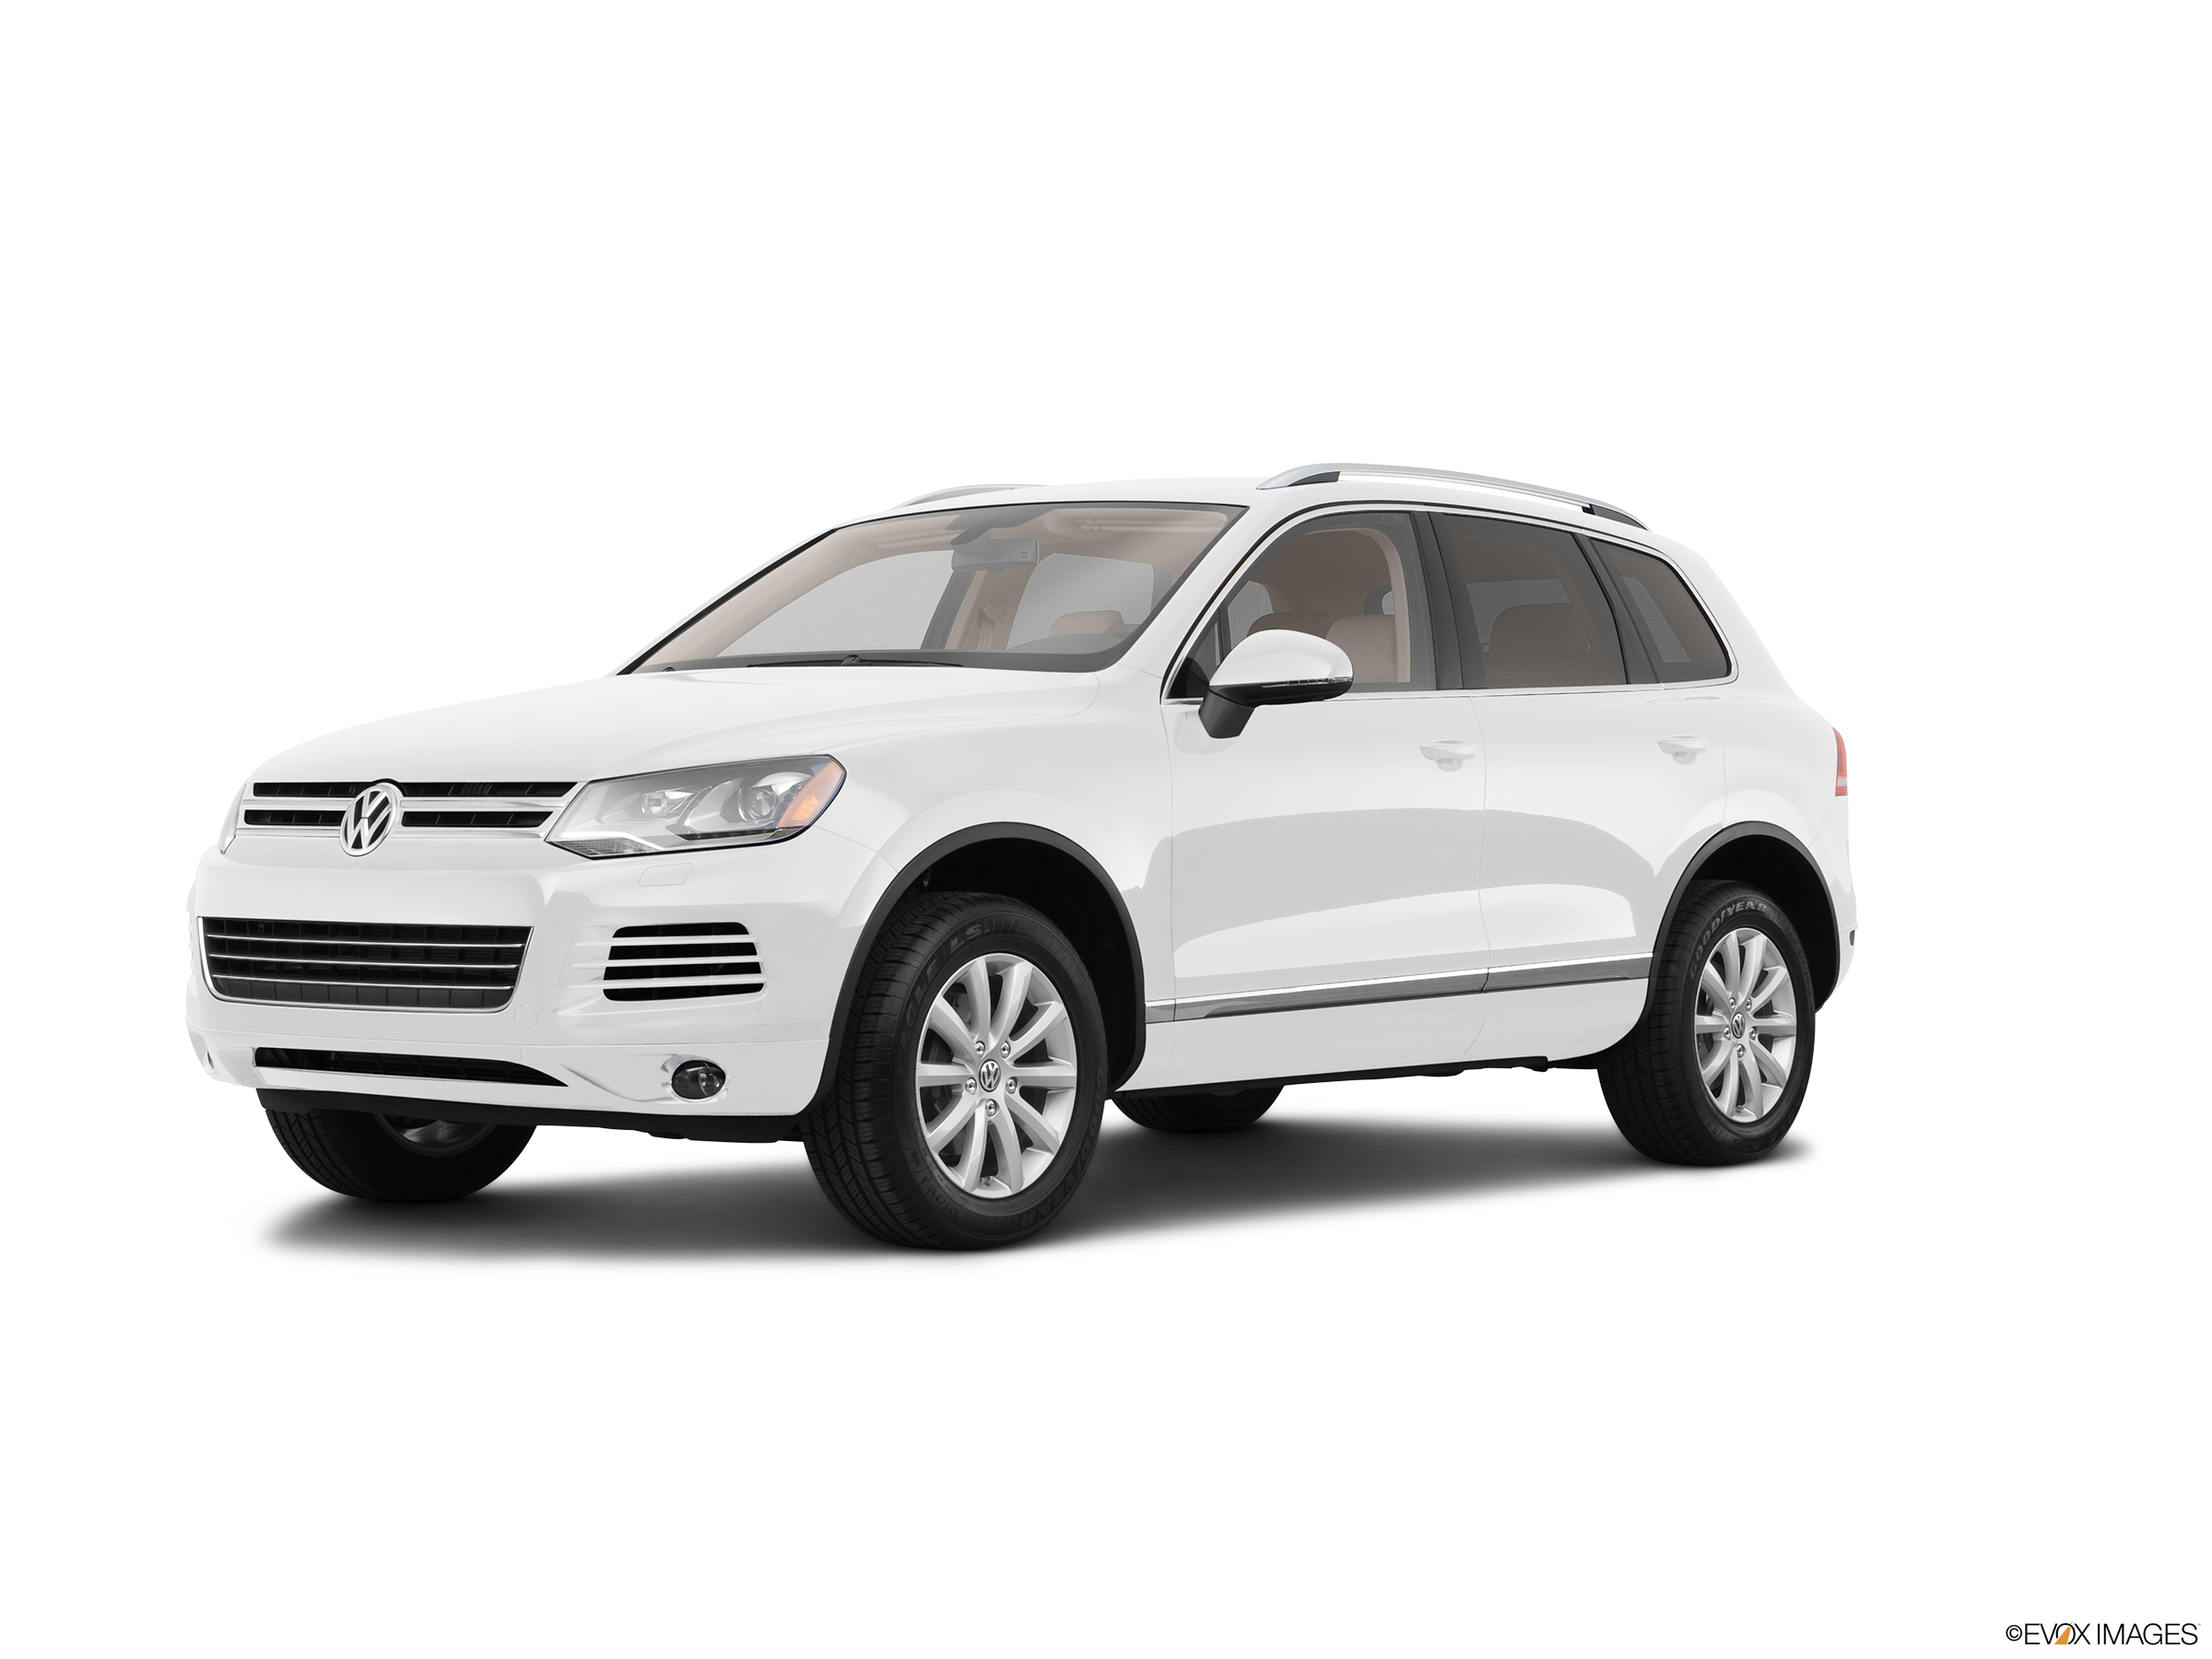 2011 Volkswagen Touareg Values Cars For Sale Kelley Blue Book